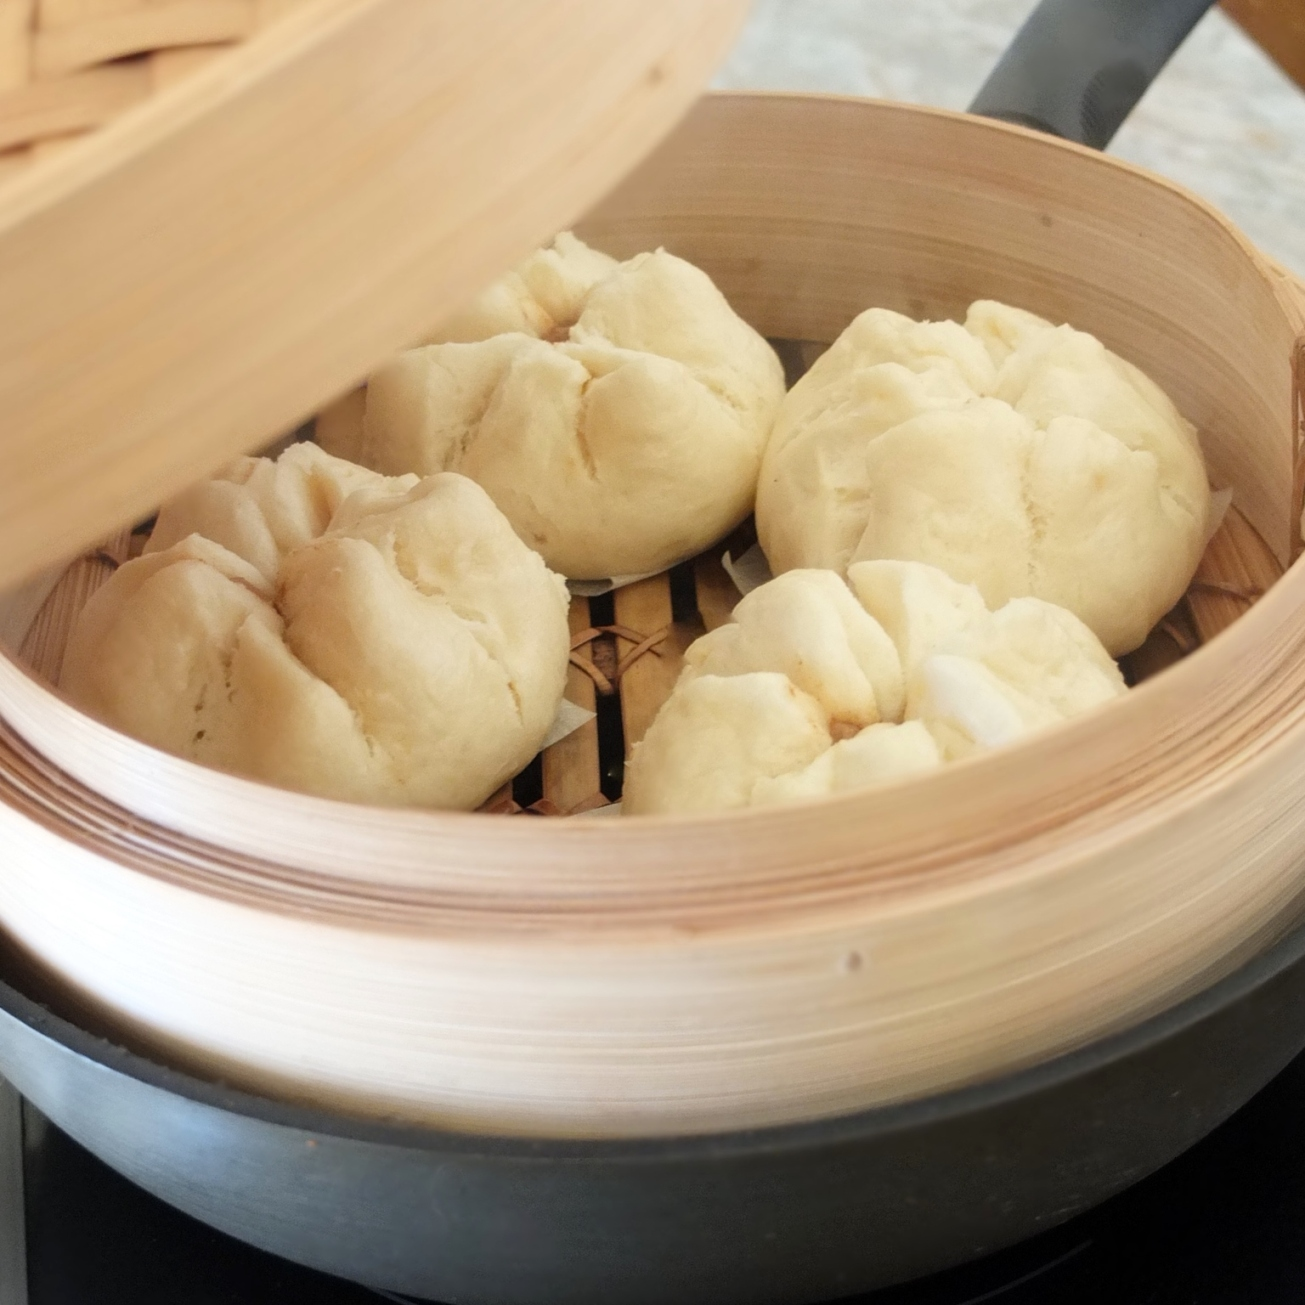 Char siu bao - steamed barbecue pork buns